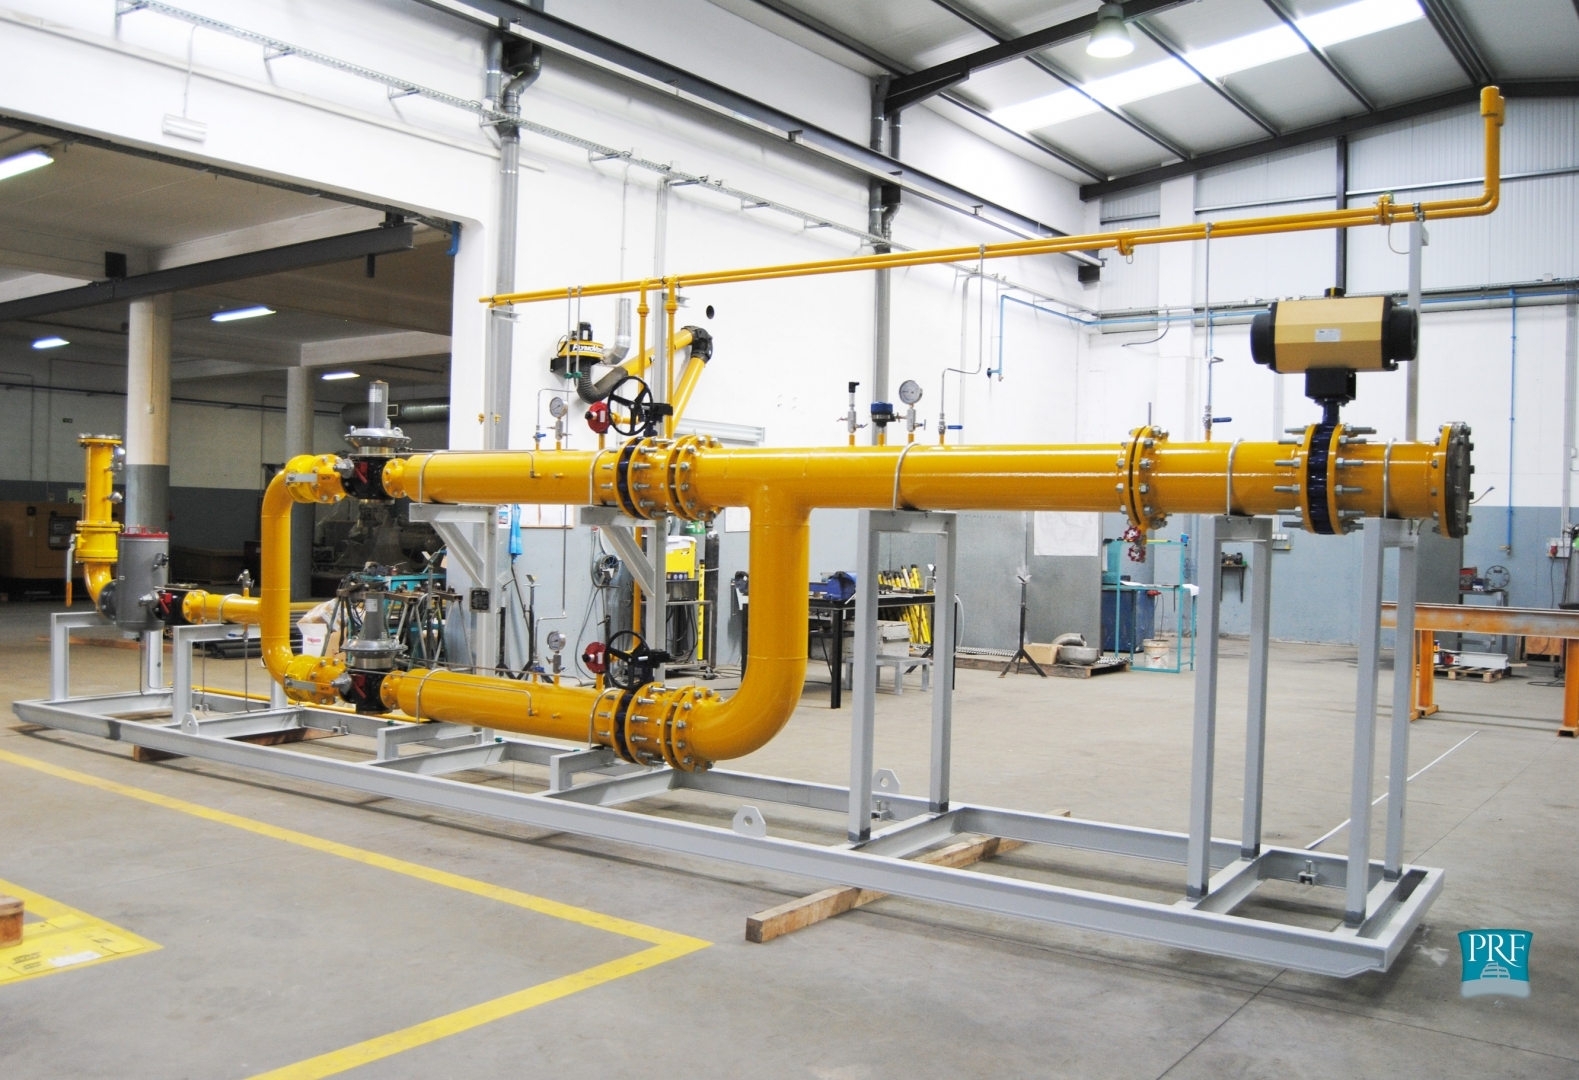 #B98012 PRF Gás Tecnologia E Construção Industrial Gas Networks Most Effective 2815 Facilities Maintenance Definition pictures with 1579x1080 px on helpvideos.info - Air Conditioners, Air Coolers and more